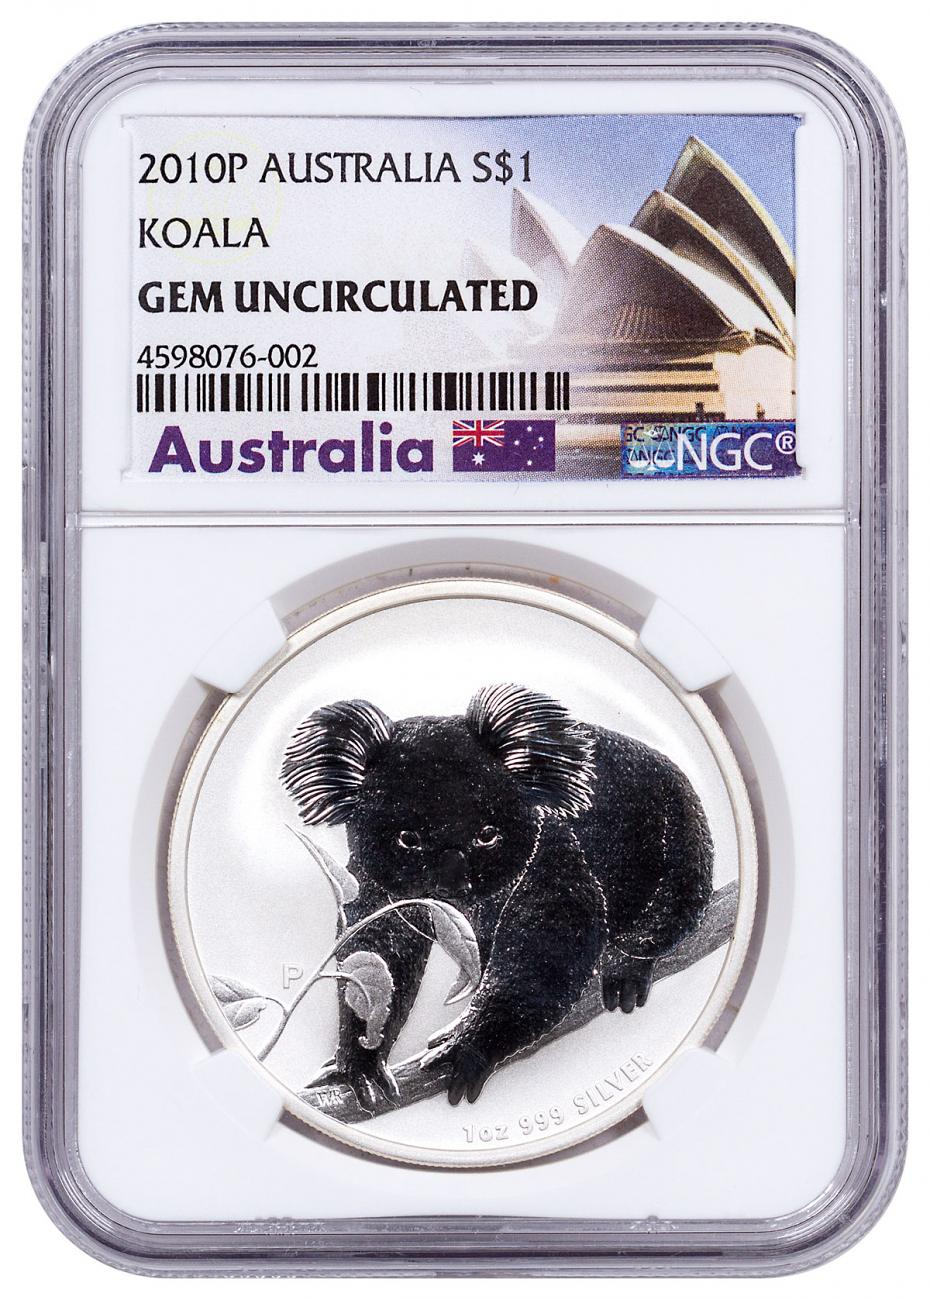 2010-P Australia 1 oz Silver Koala $1 NGC GEM Uncirculated Exclusive Australia Label